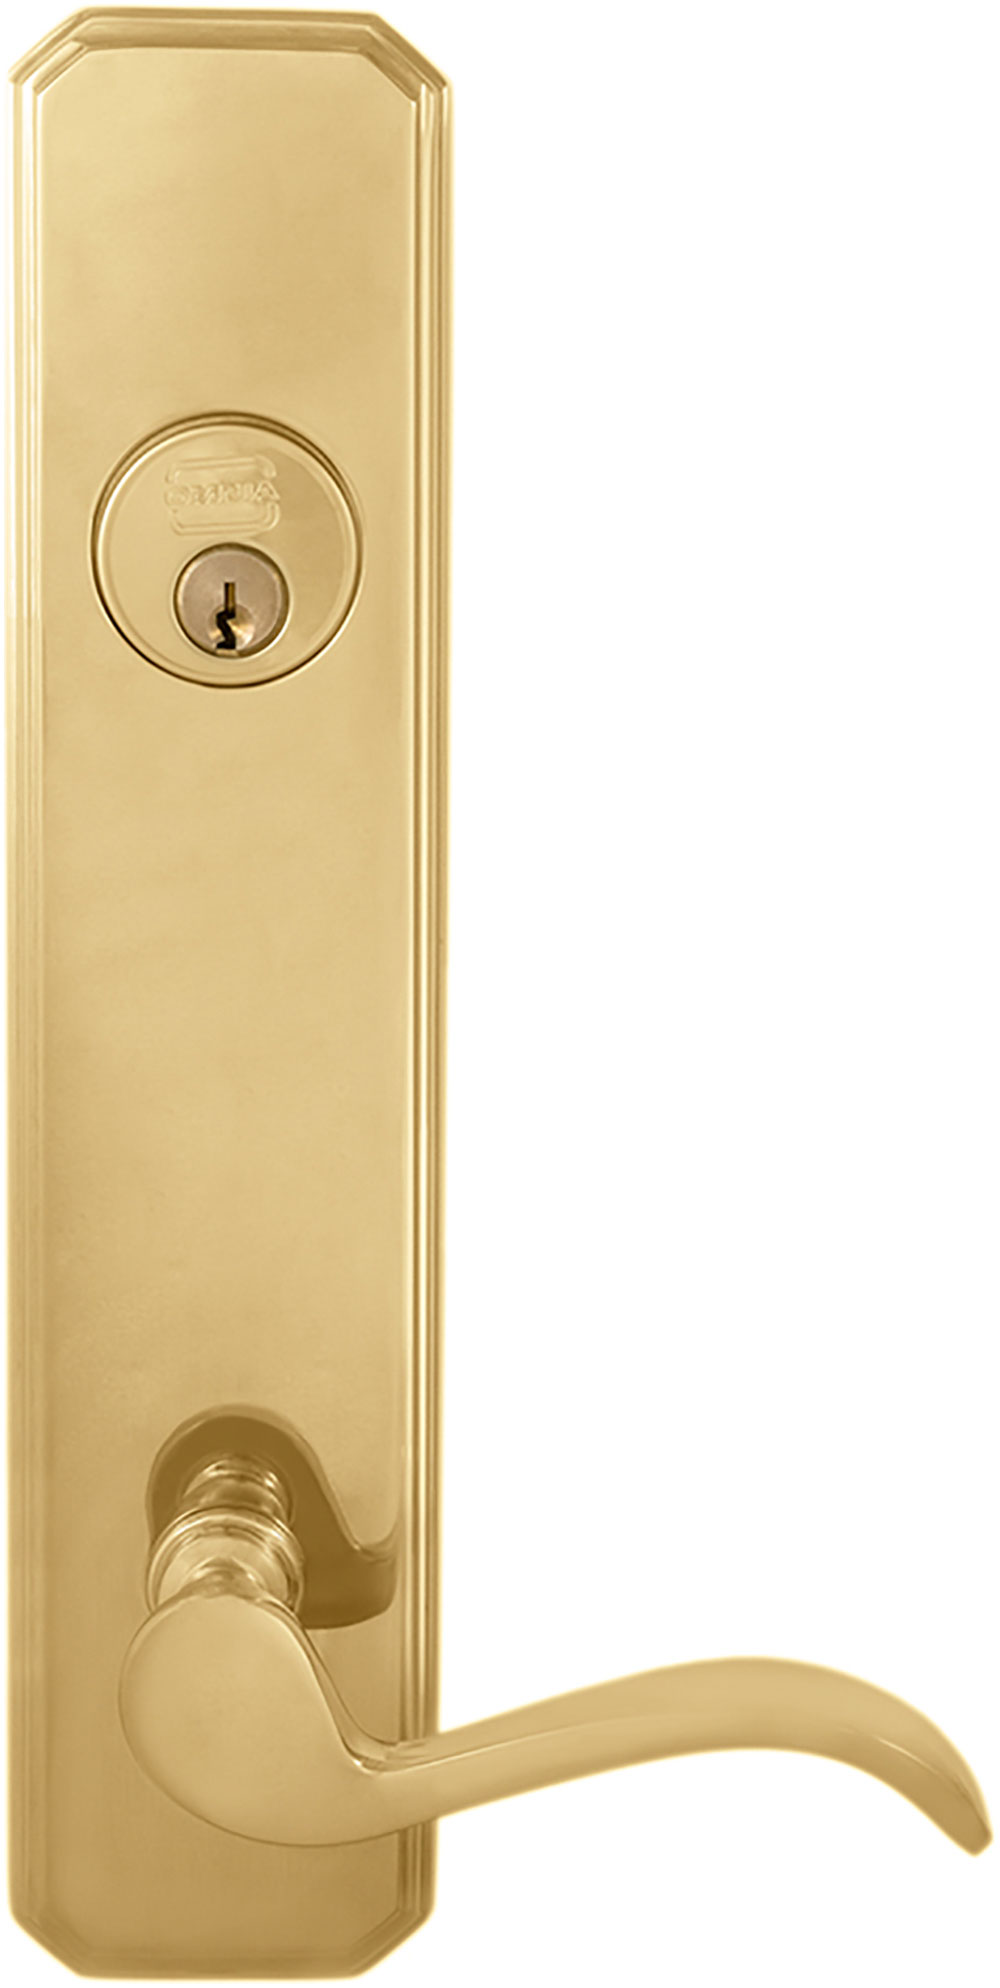 Item No.D11895 (US3 Polished Brass, Lacquered)